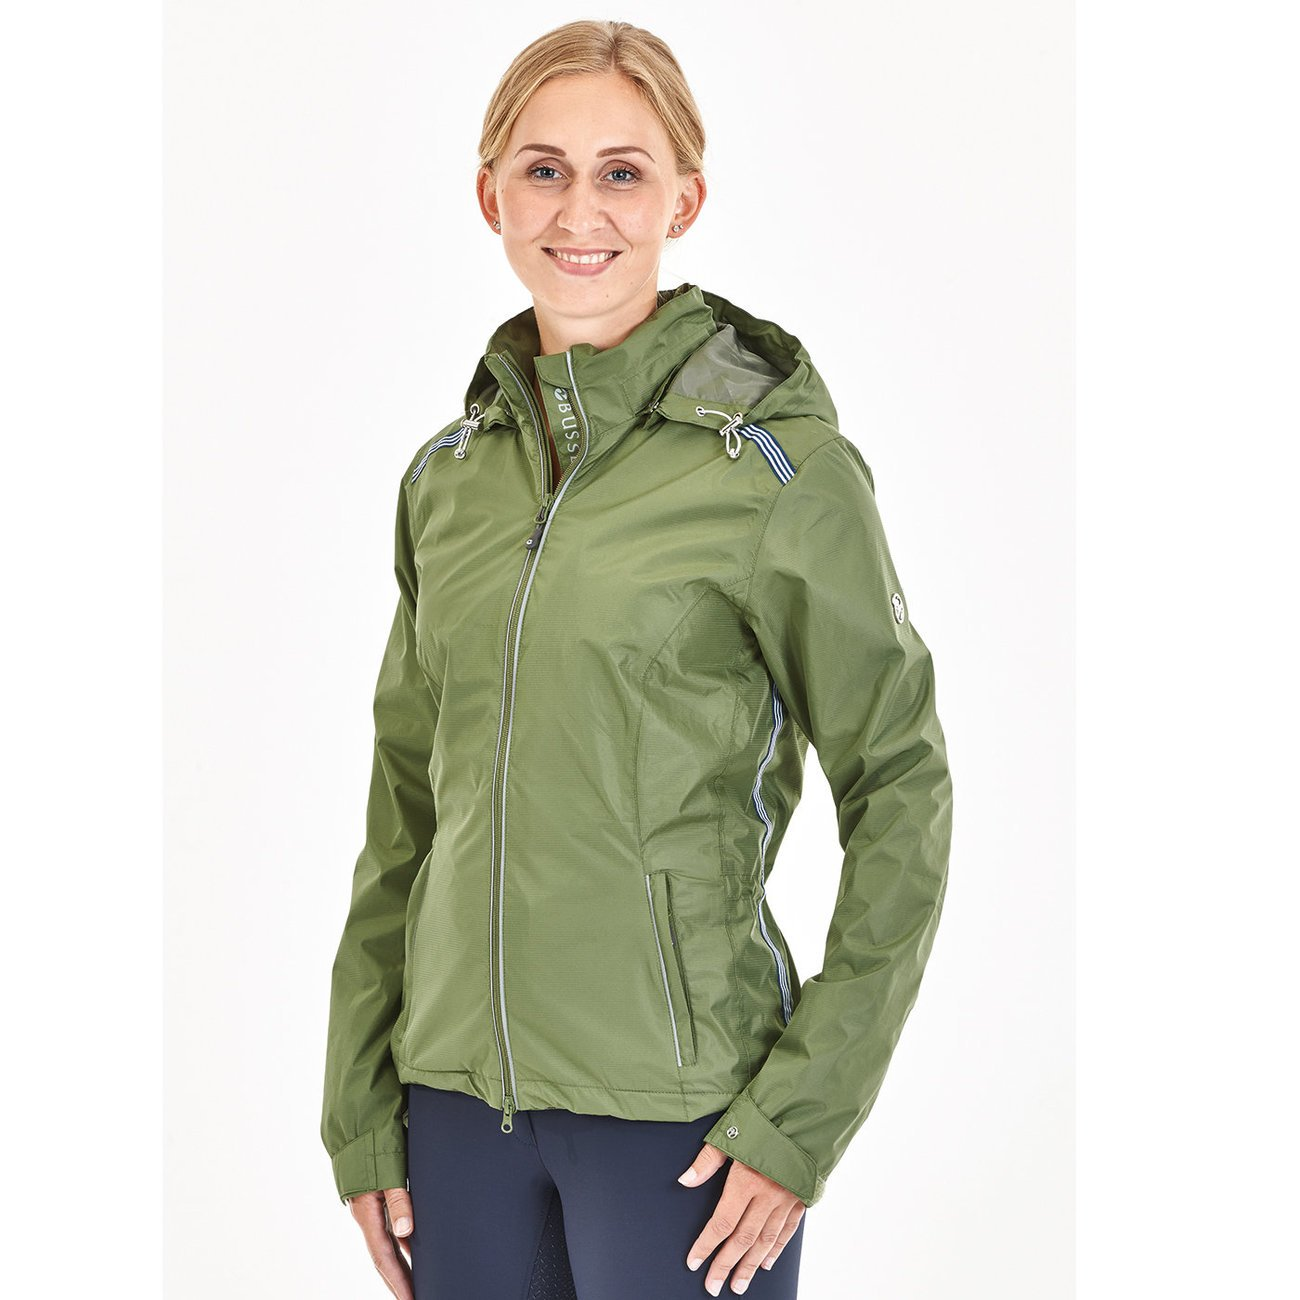 BUSSE leichte Reitjacke Ayleen Preview Image